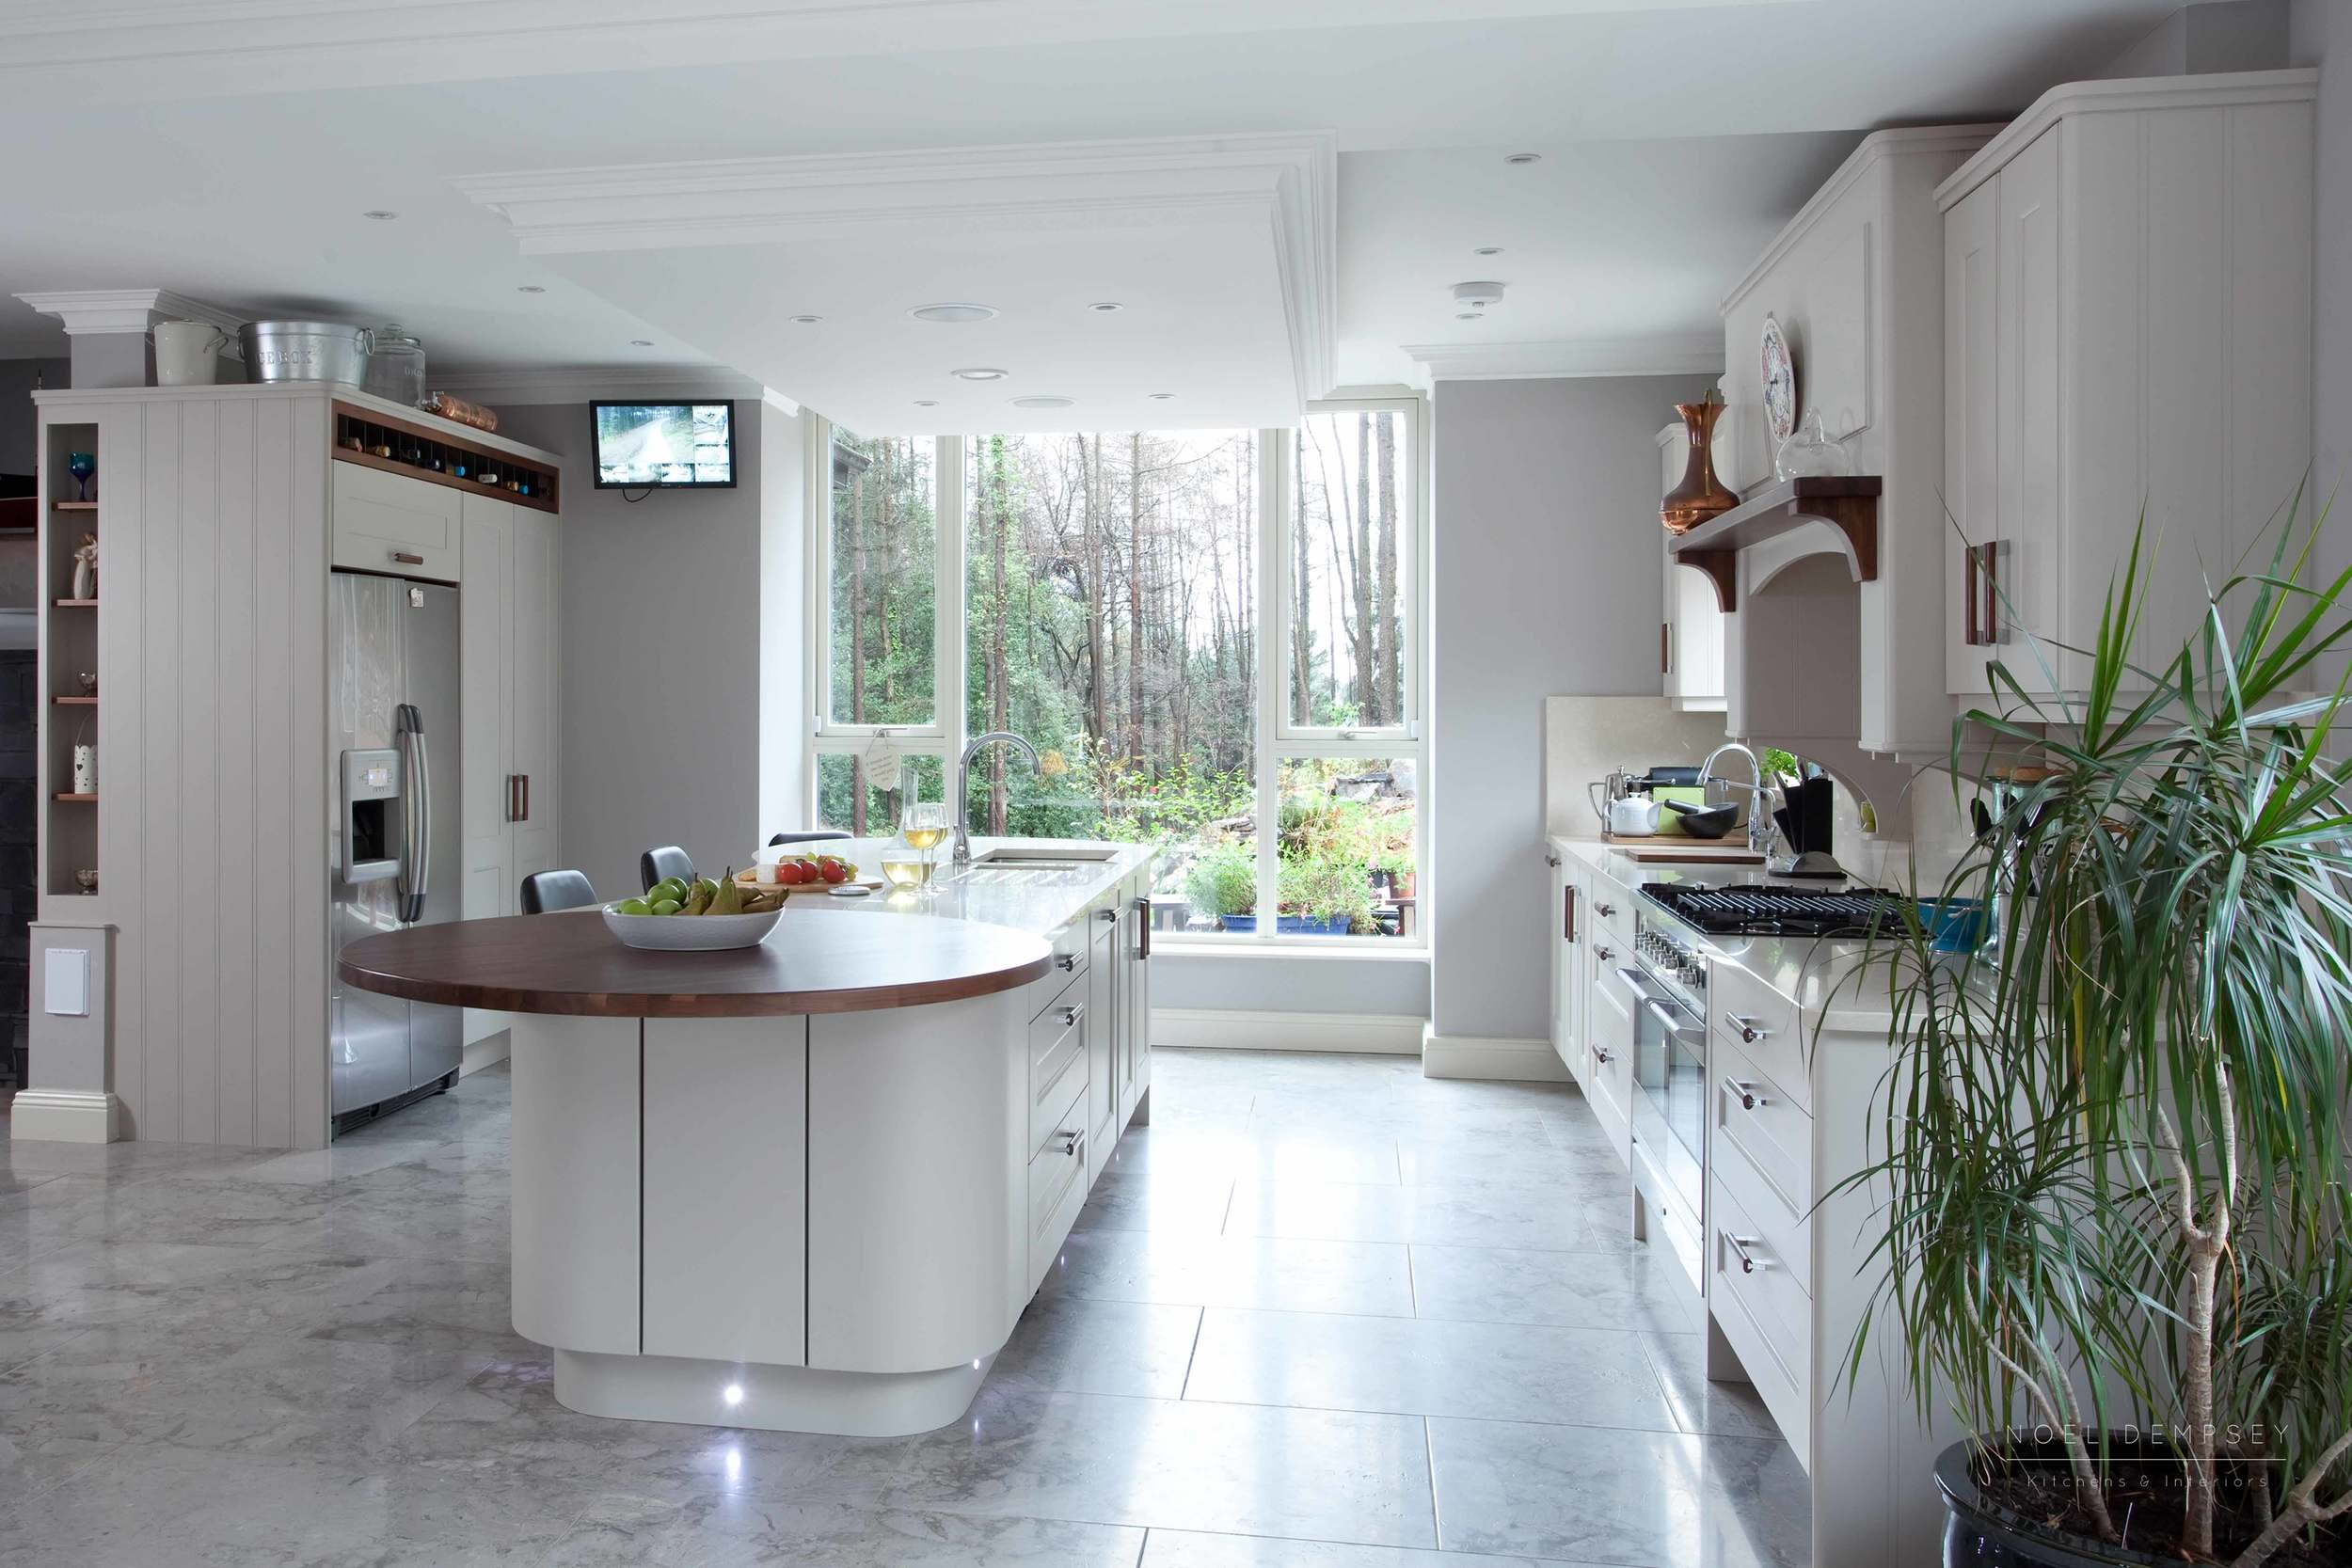 Greenview-painted-kitchens-wicklow-2.jpg